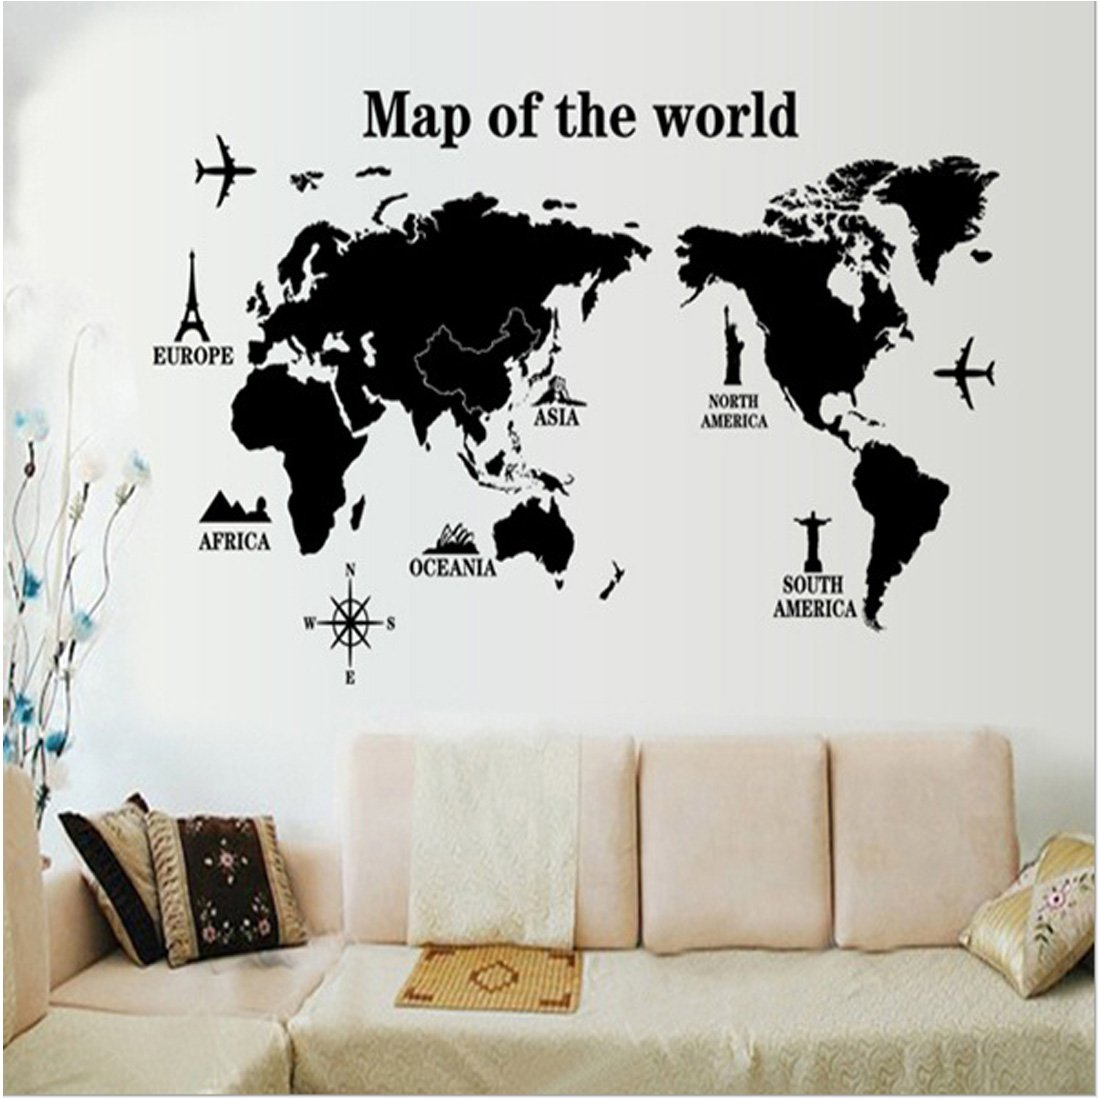 3D World Map Wall Decals Stickers Home Living Room Decoration DIY ...